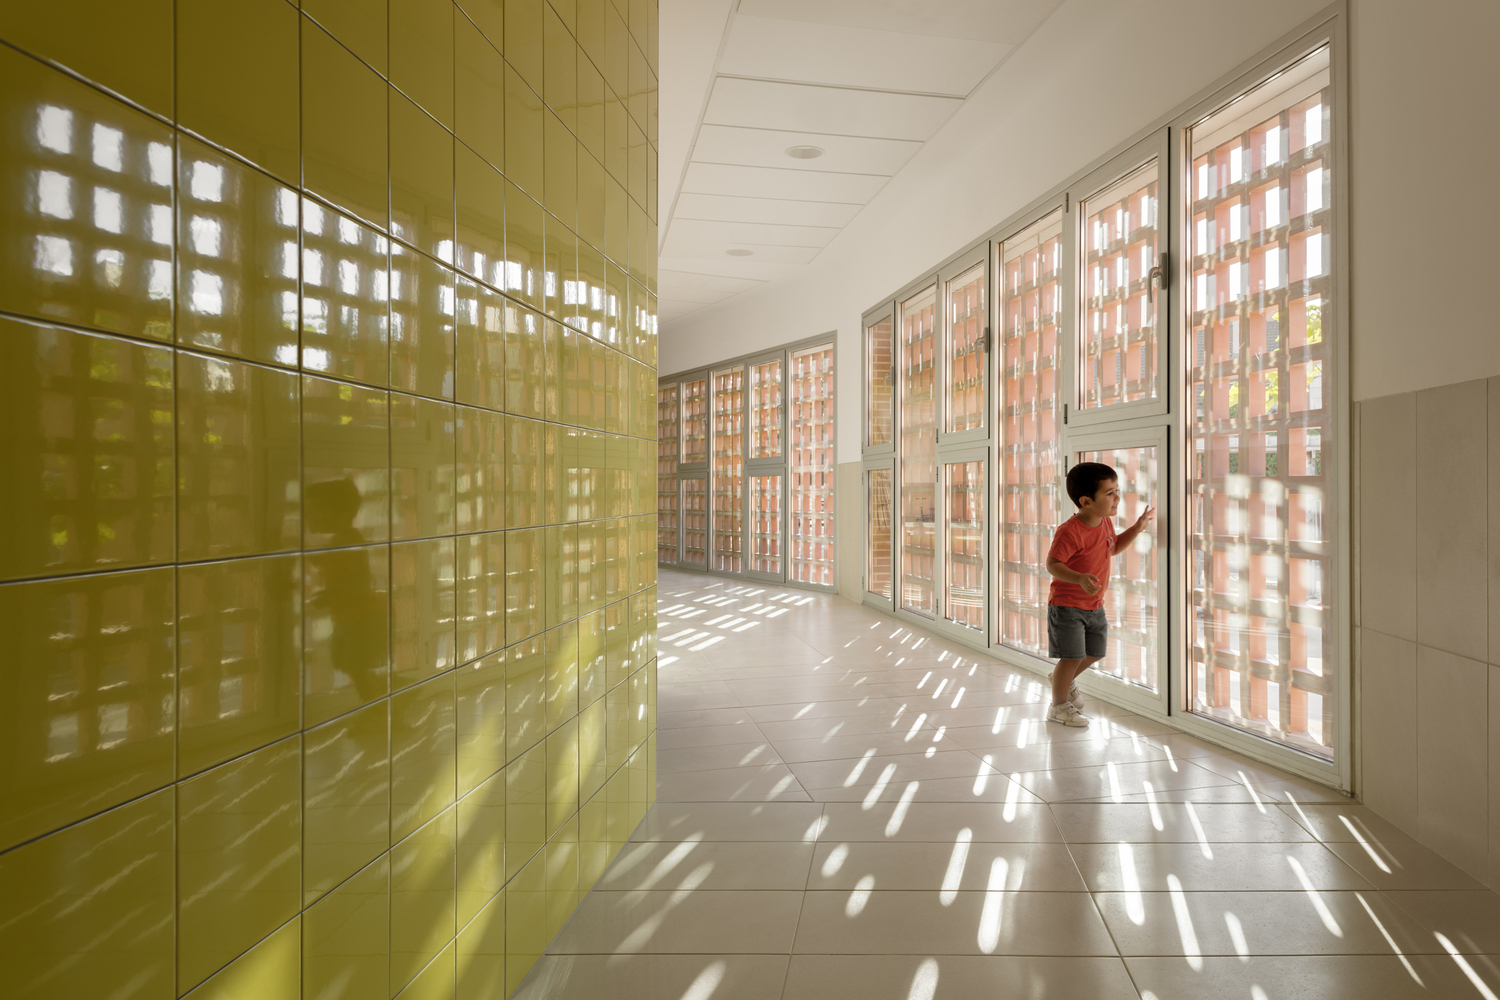 Interior Wellbeing: The Design Of Educational Spaces